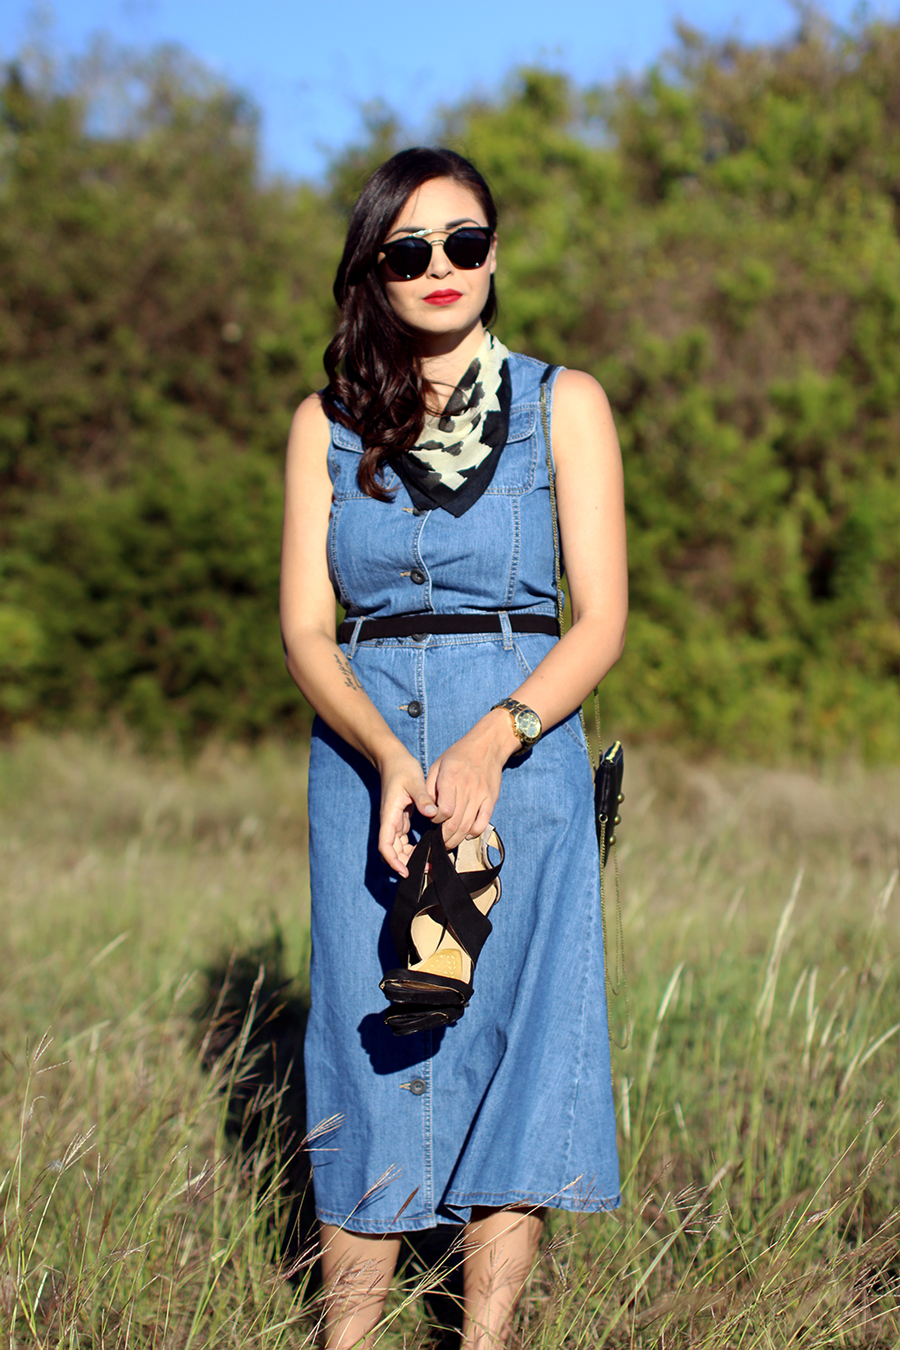 FIXIN-TO-THRILL-PINK-SILVER-FASHION-DENIM-DRESS-STRAPPY-HEELS-TREND-FALL-OCTOBER-ATX-AUSTIN-STYLE-BLOG-FW15-TRENDY-CHIC-GLAM-TEXAS-10